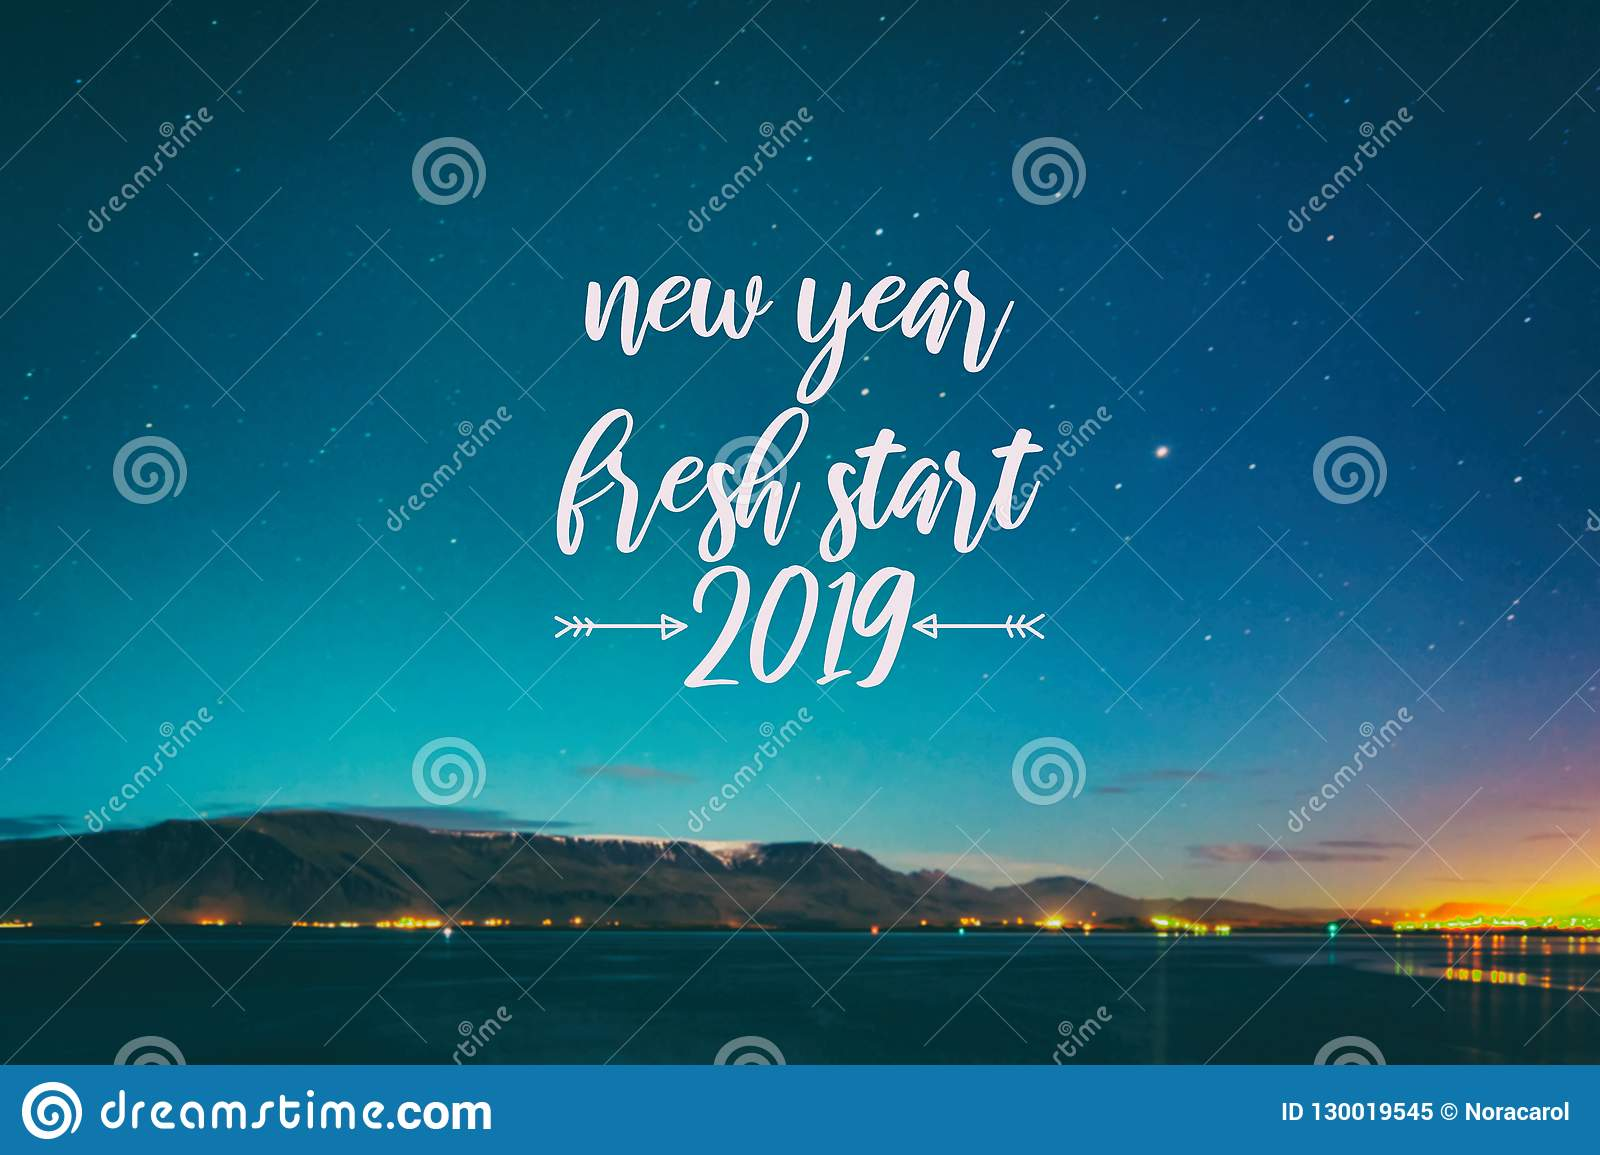 new year fresh start 2019